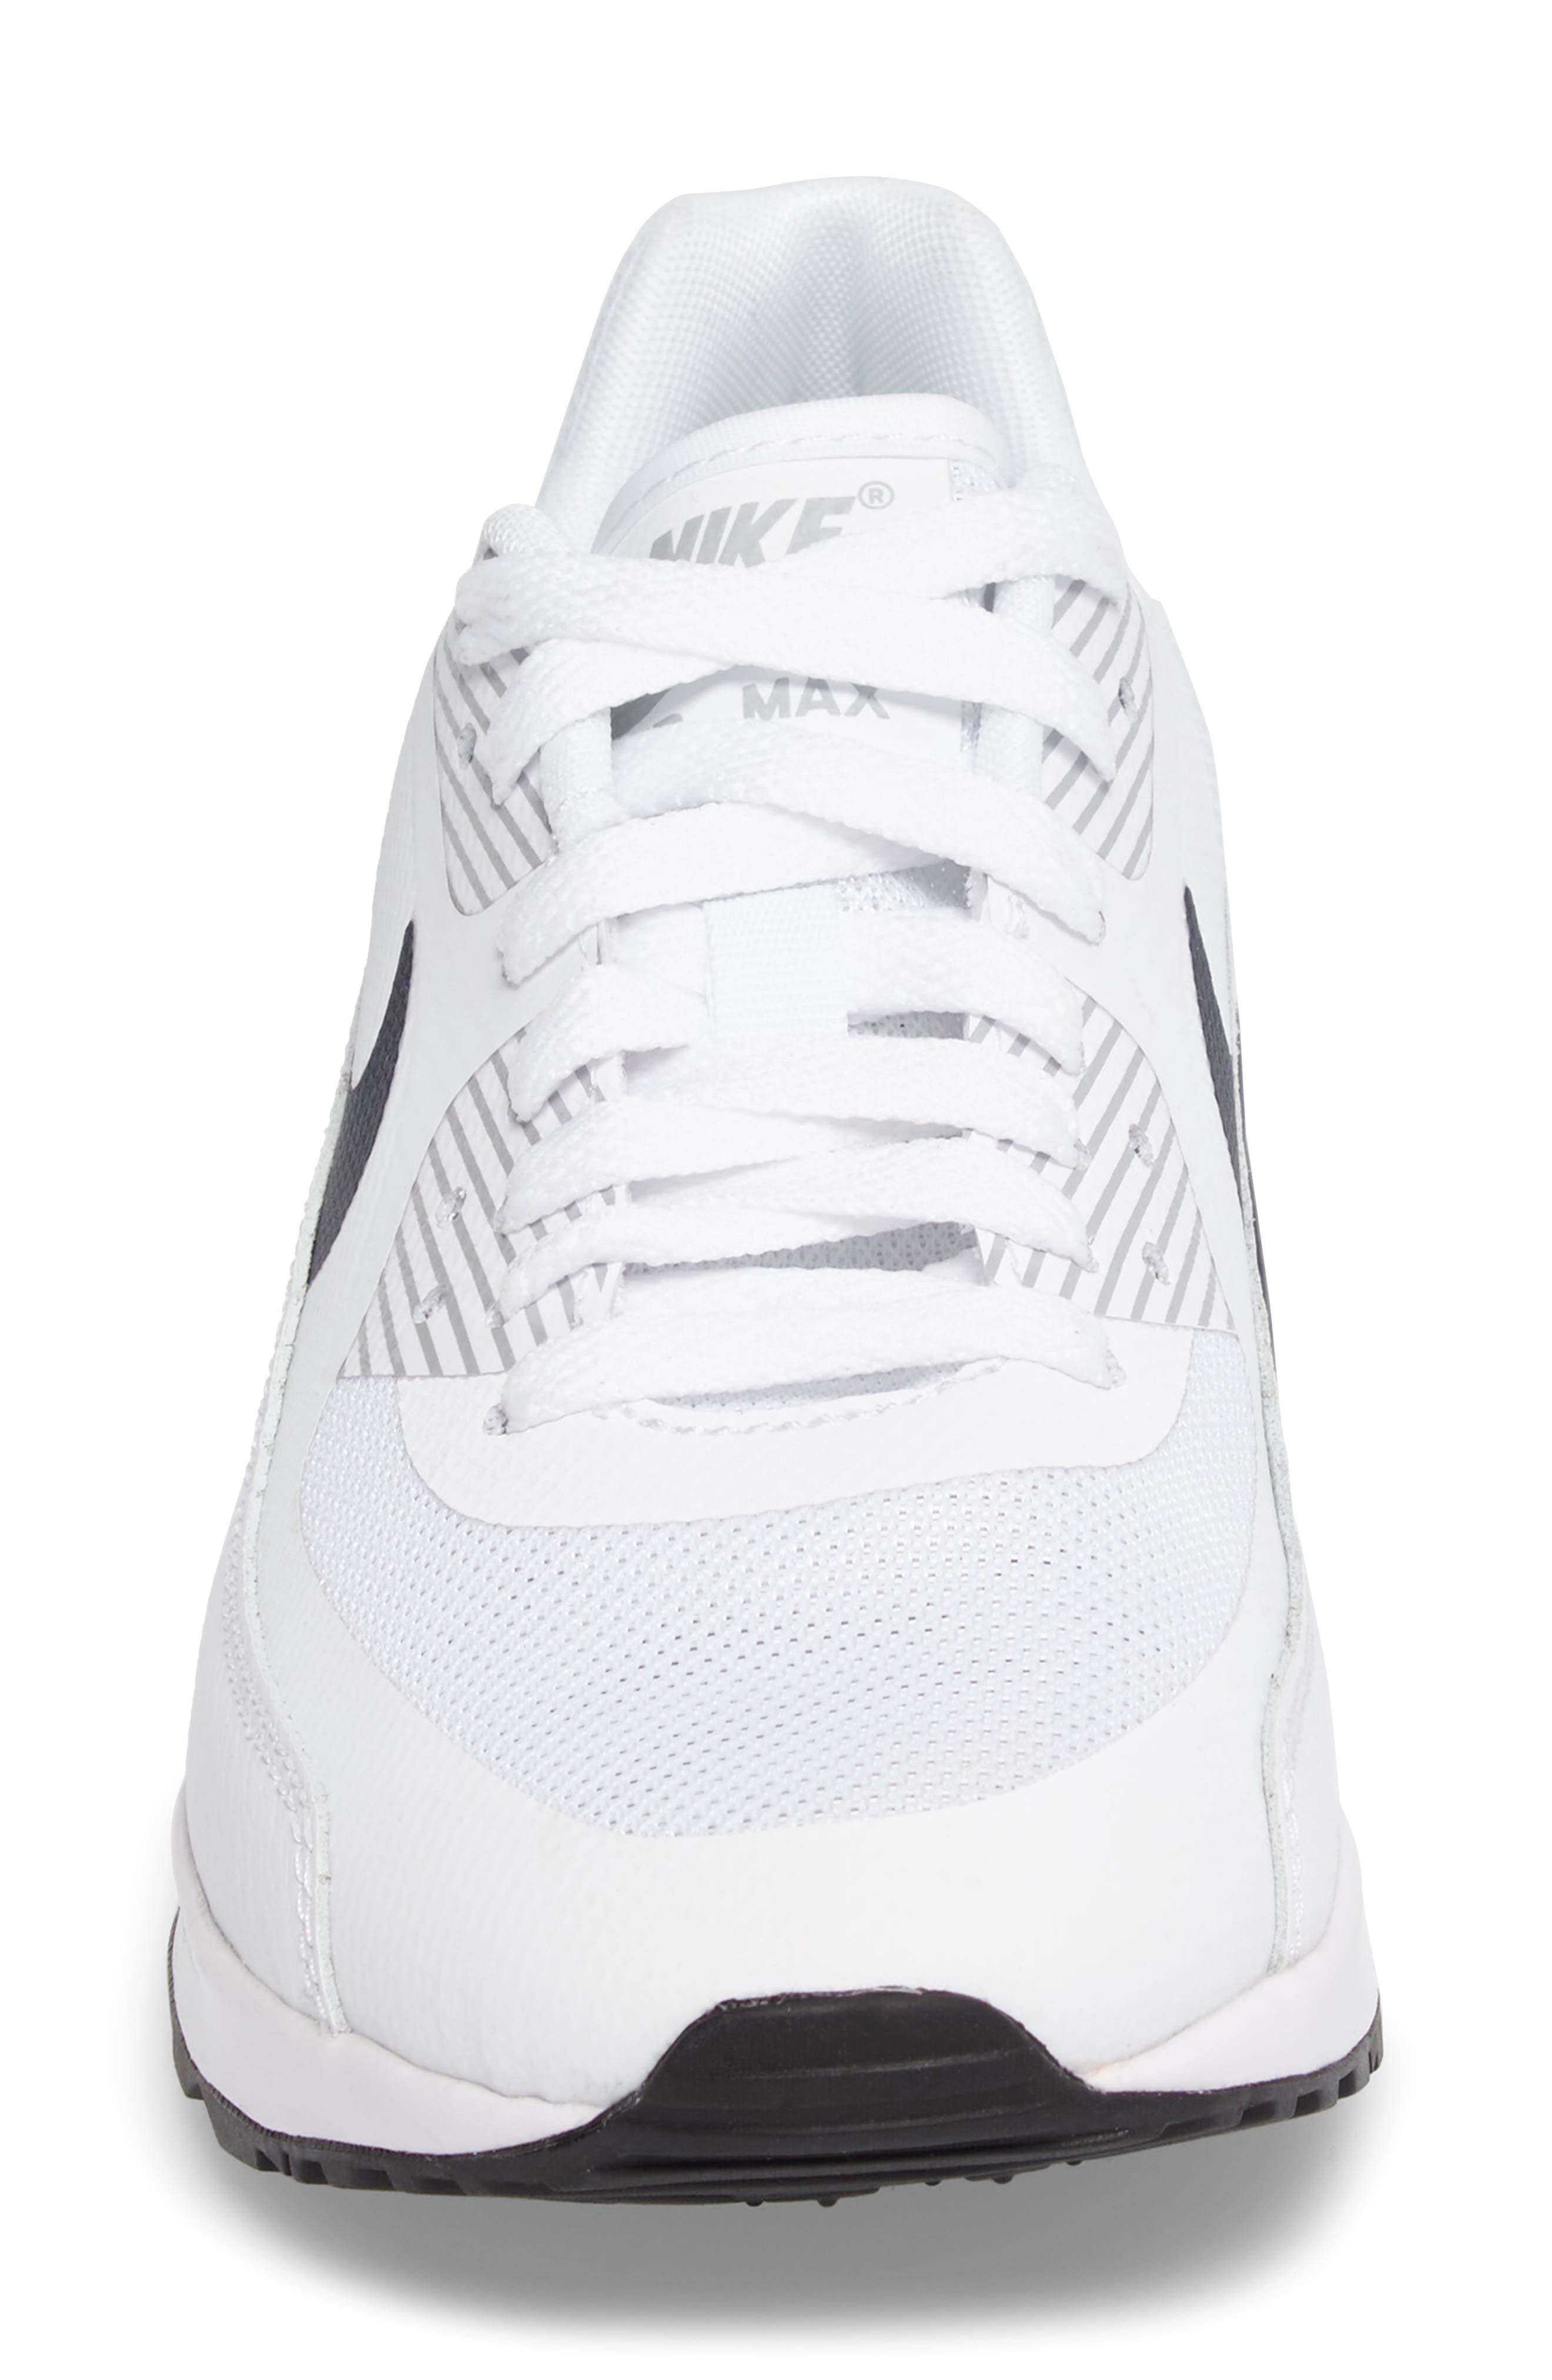 Air Max 90 Ultra 2.0 Sneaker,                             Alternate thumbnail 3, color,                             White/ Navy/ Wolf Grey/ Black